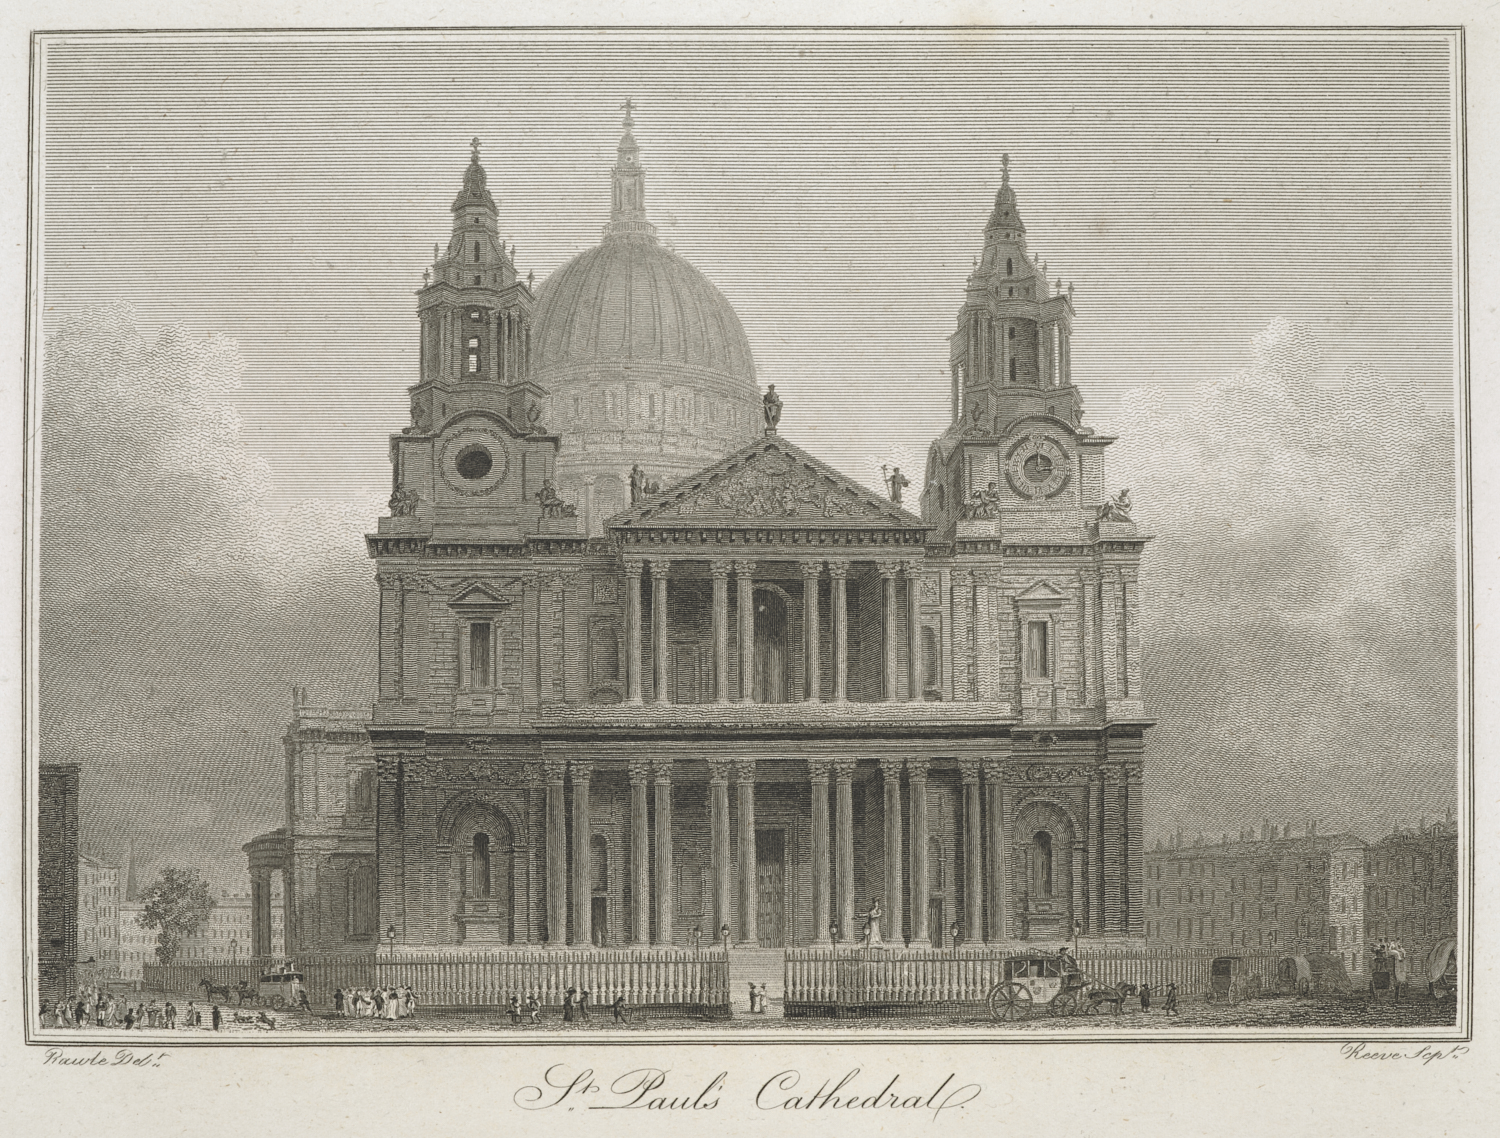 Richard Rhodes, after Edward Pugh, St Paul's Cathedral, from Modern London (London, Richard Phillips, 1804), etching, 10349.h.13